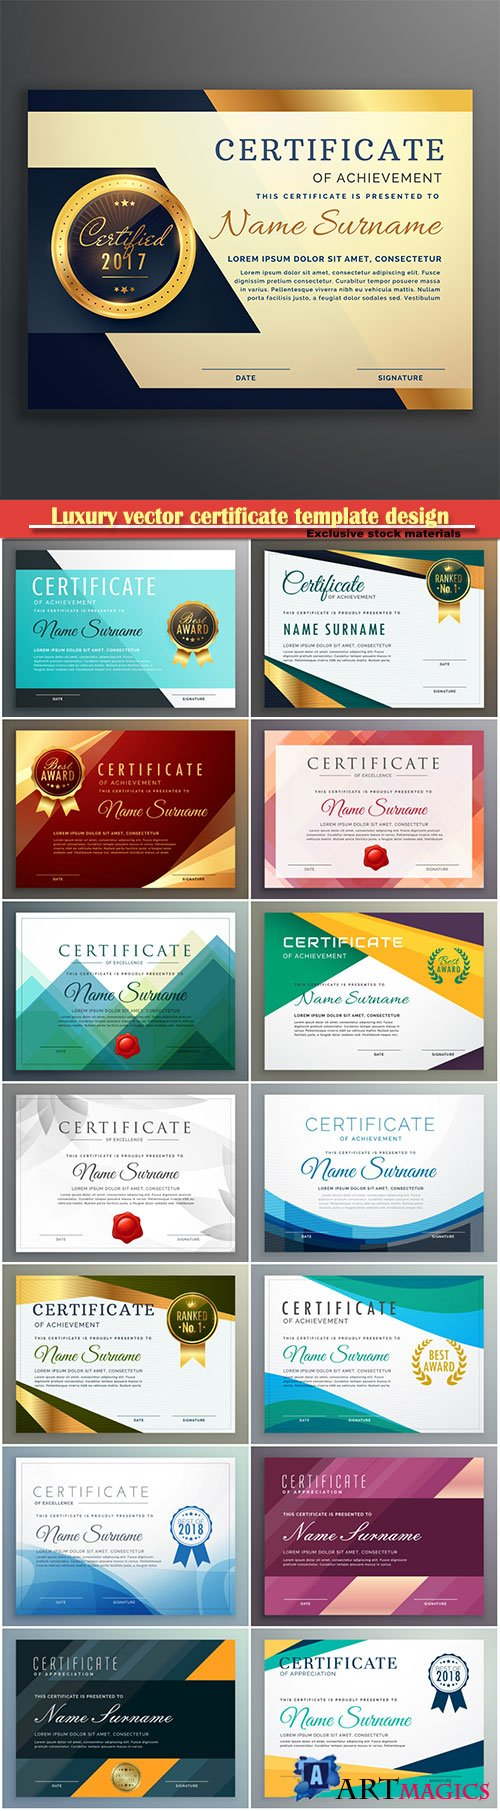 Luxury vector certificate template design in geometric shape style